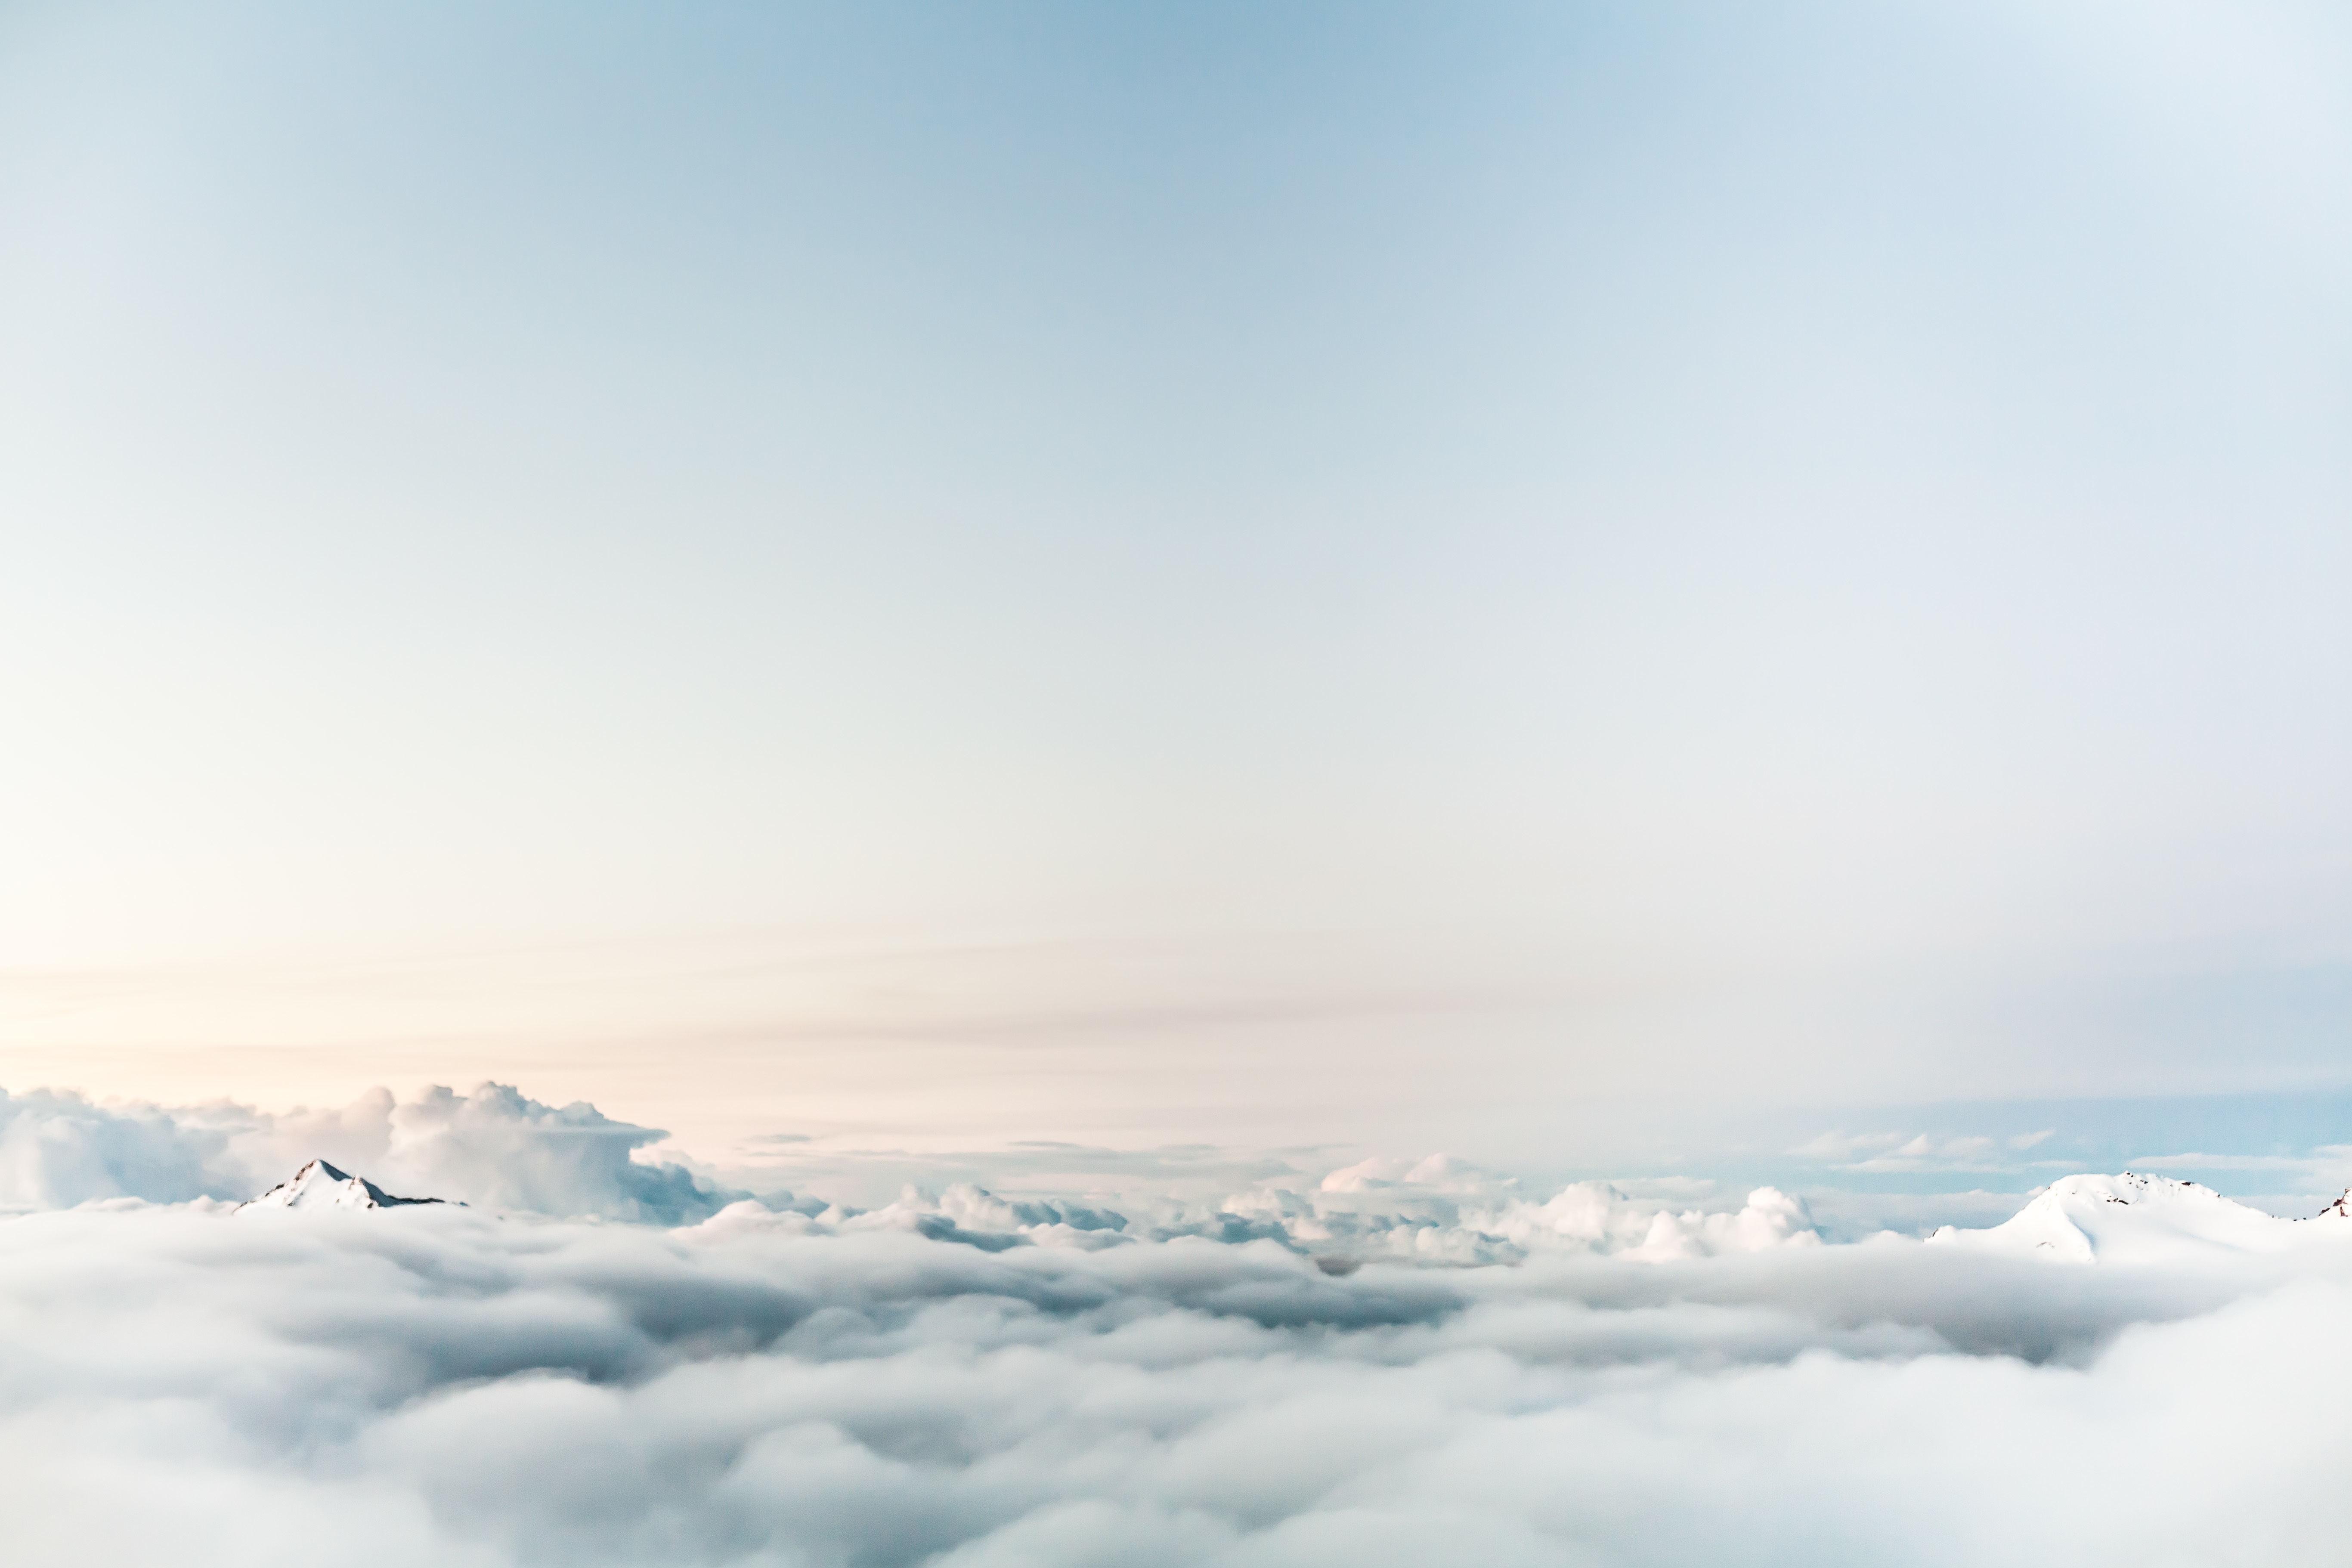 What does cloud really mean?